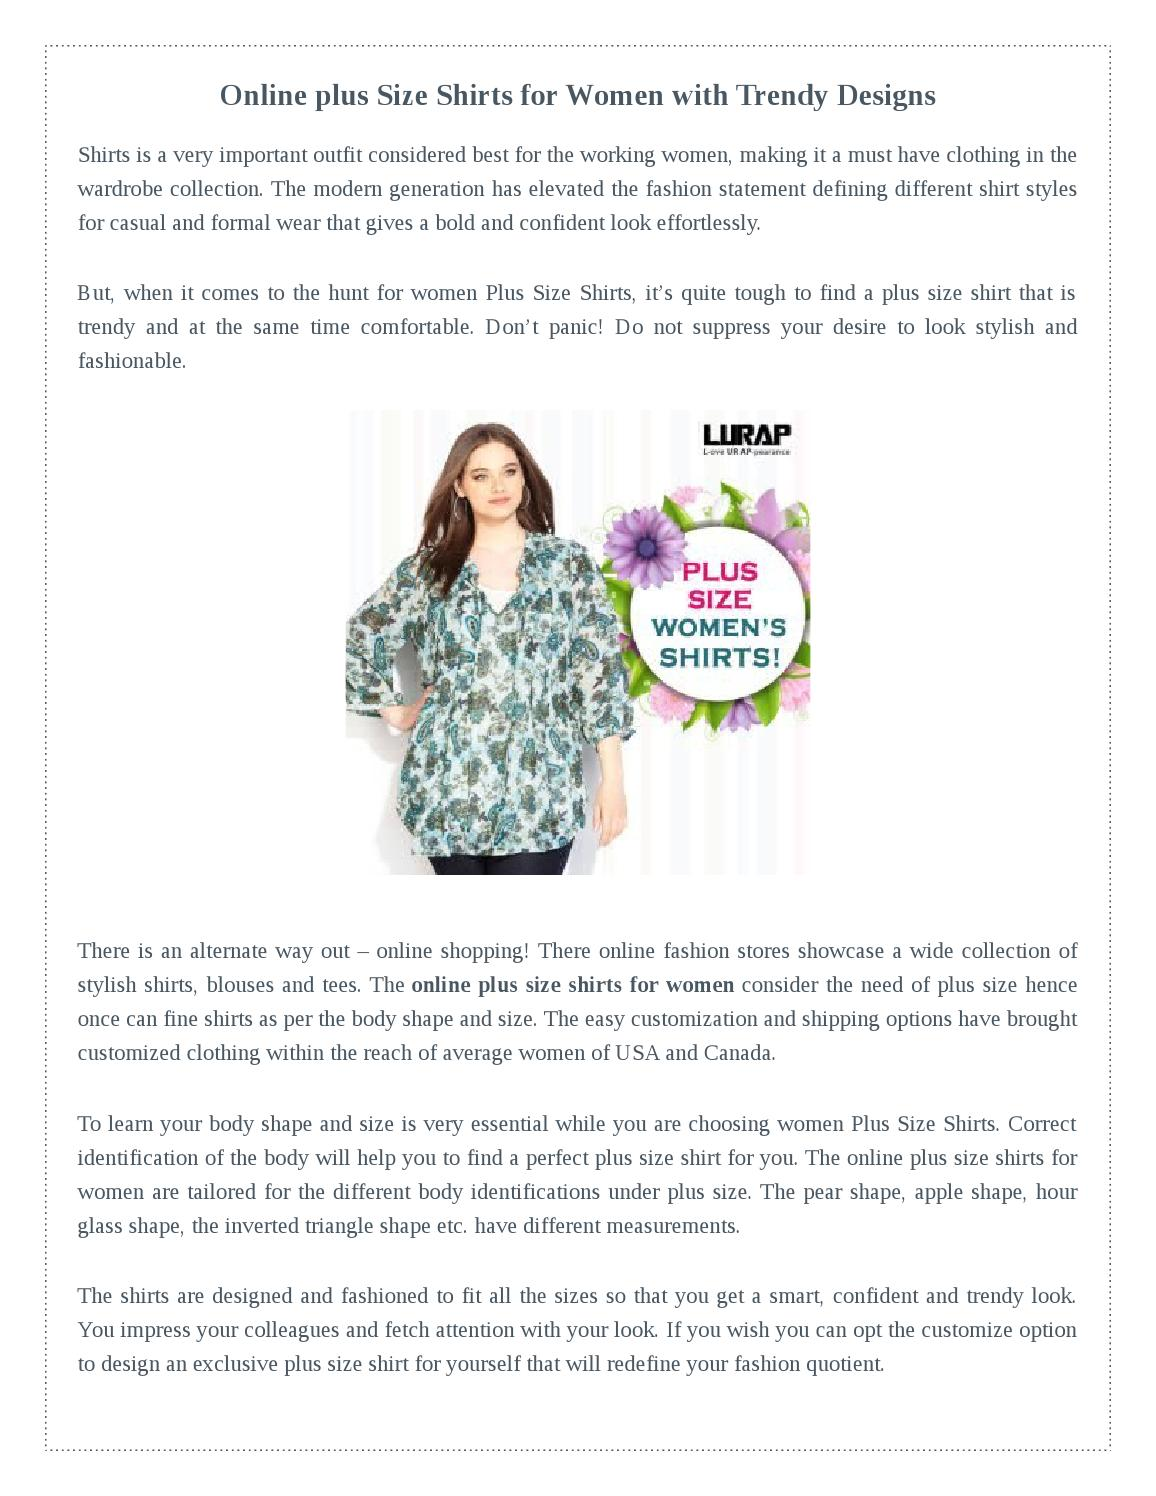 Online Plus Size Shirts For Women With Trendy Designs By Alice Lodge